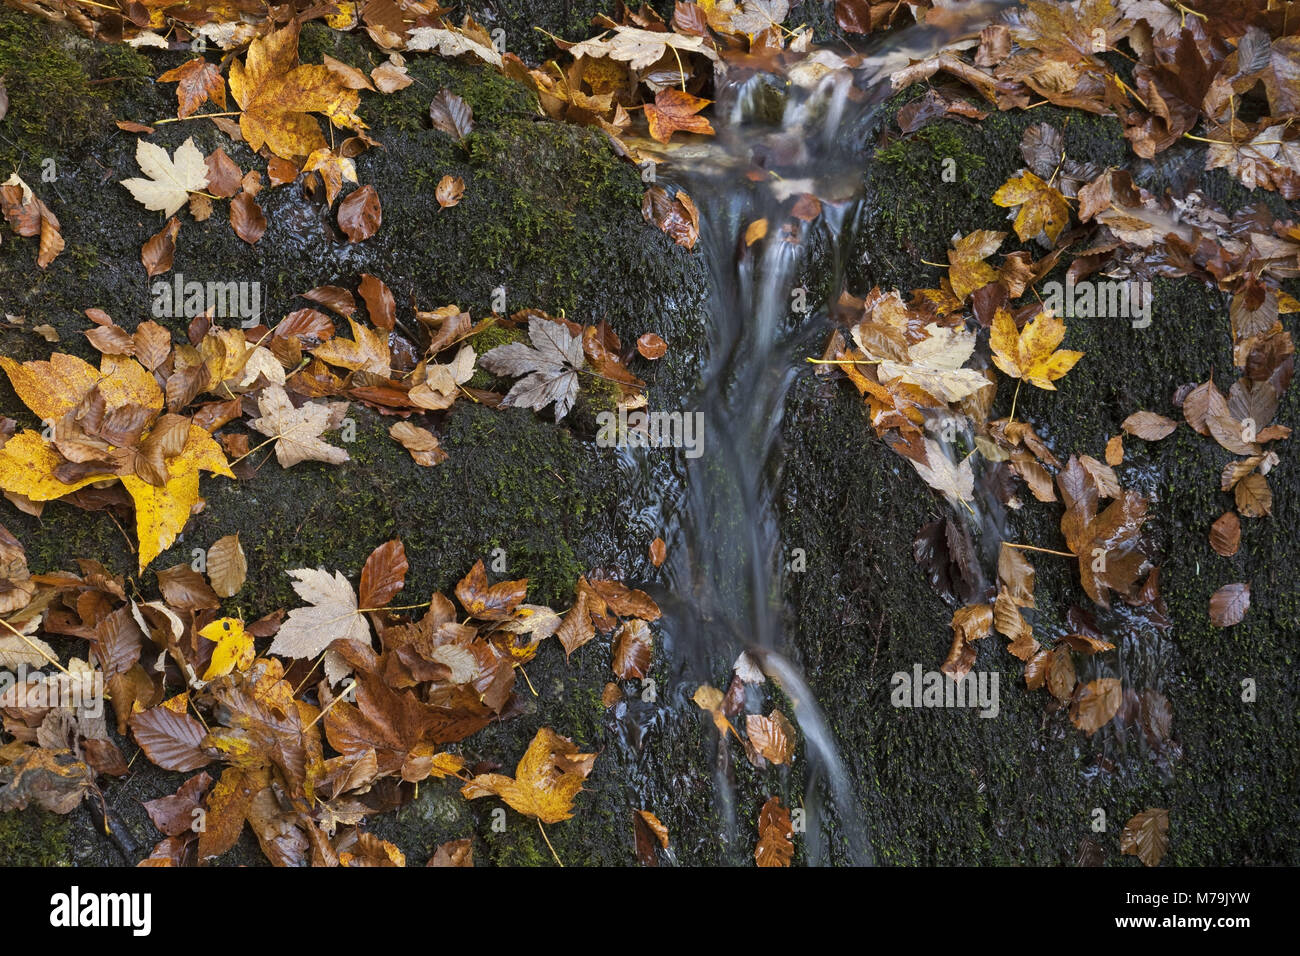 Waterfall on the way to the 'Herzogstand', Bavarian pre-alpine, Alpine foreland, alps, Bavarian uplands, - Stock Image